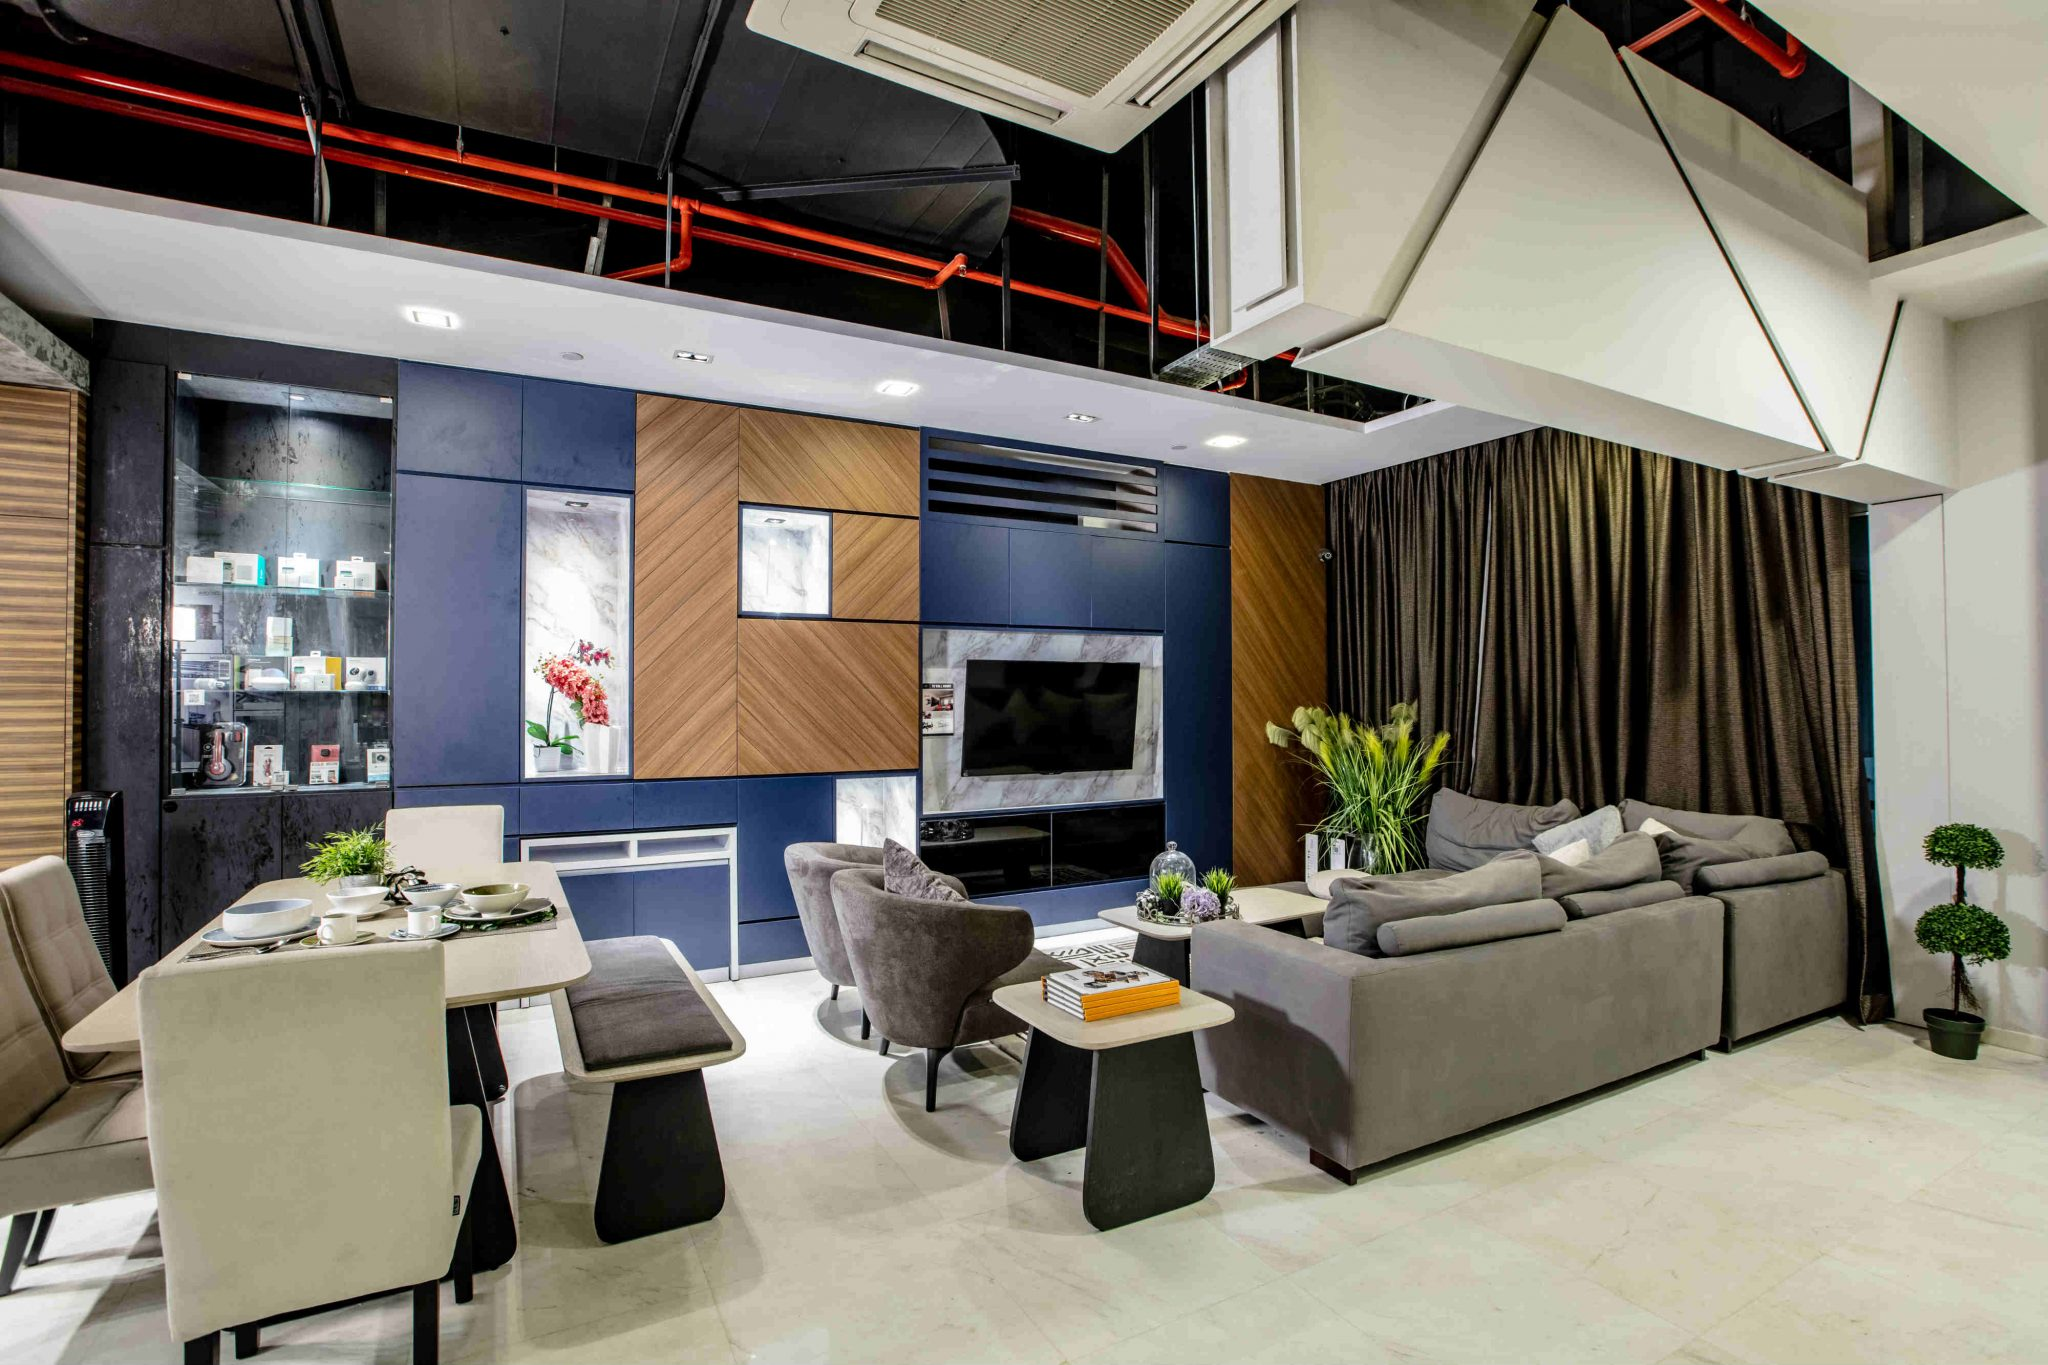 75 Interior Design Firm Near Ubi